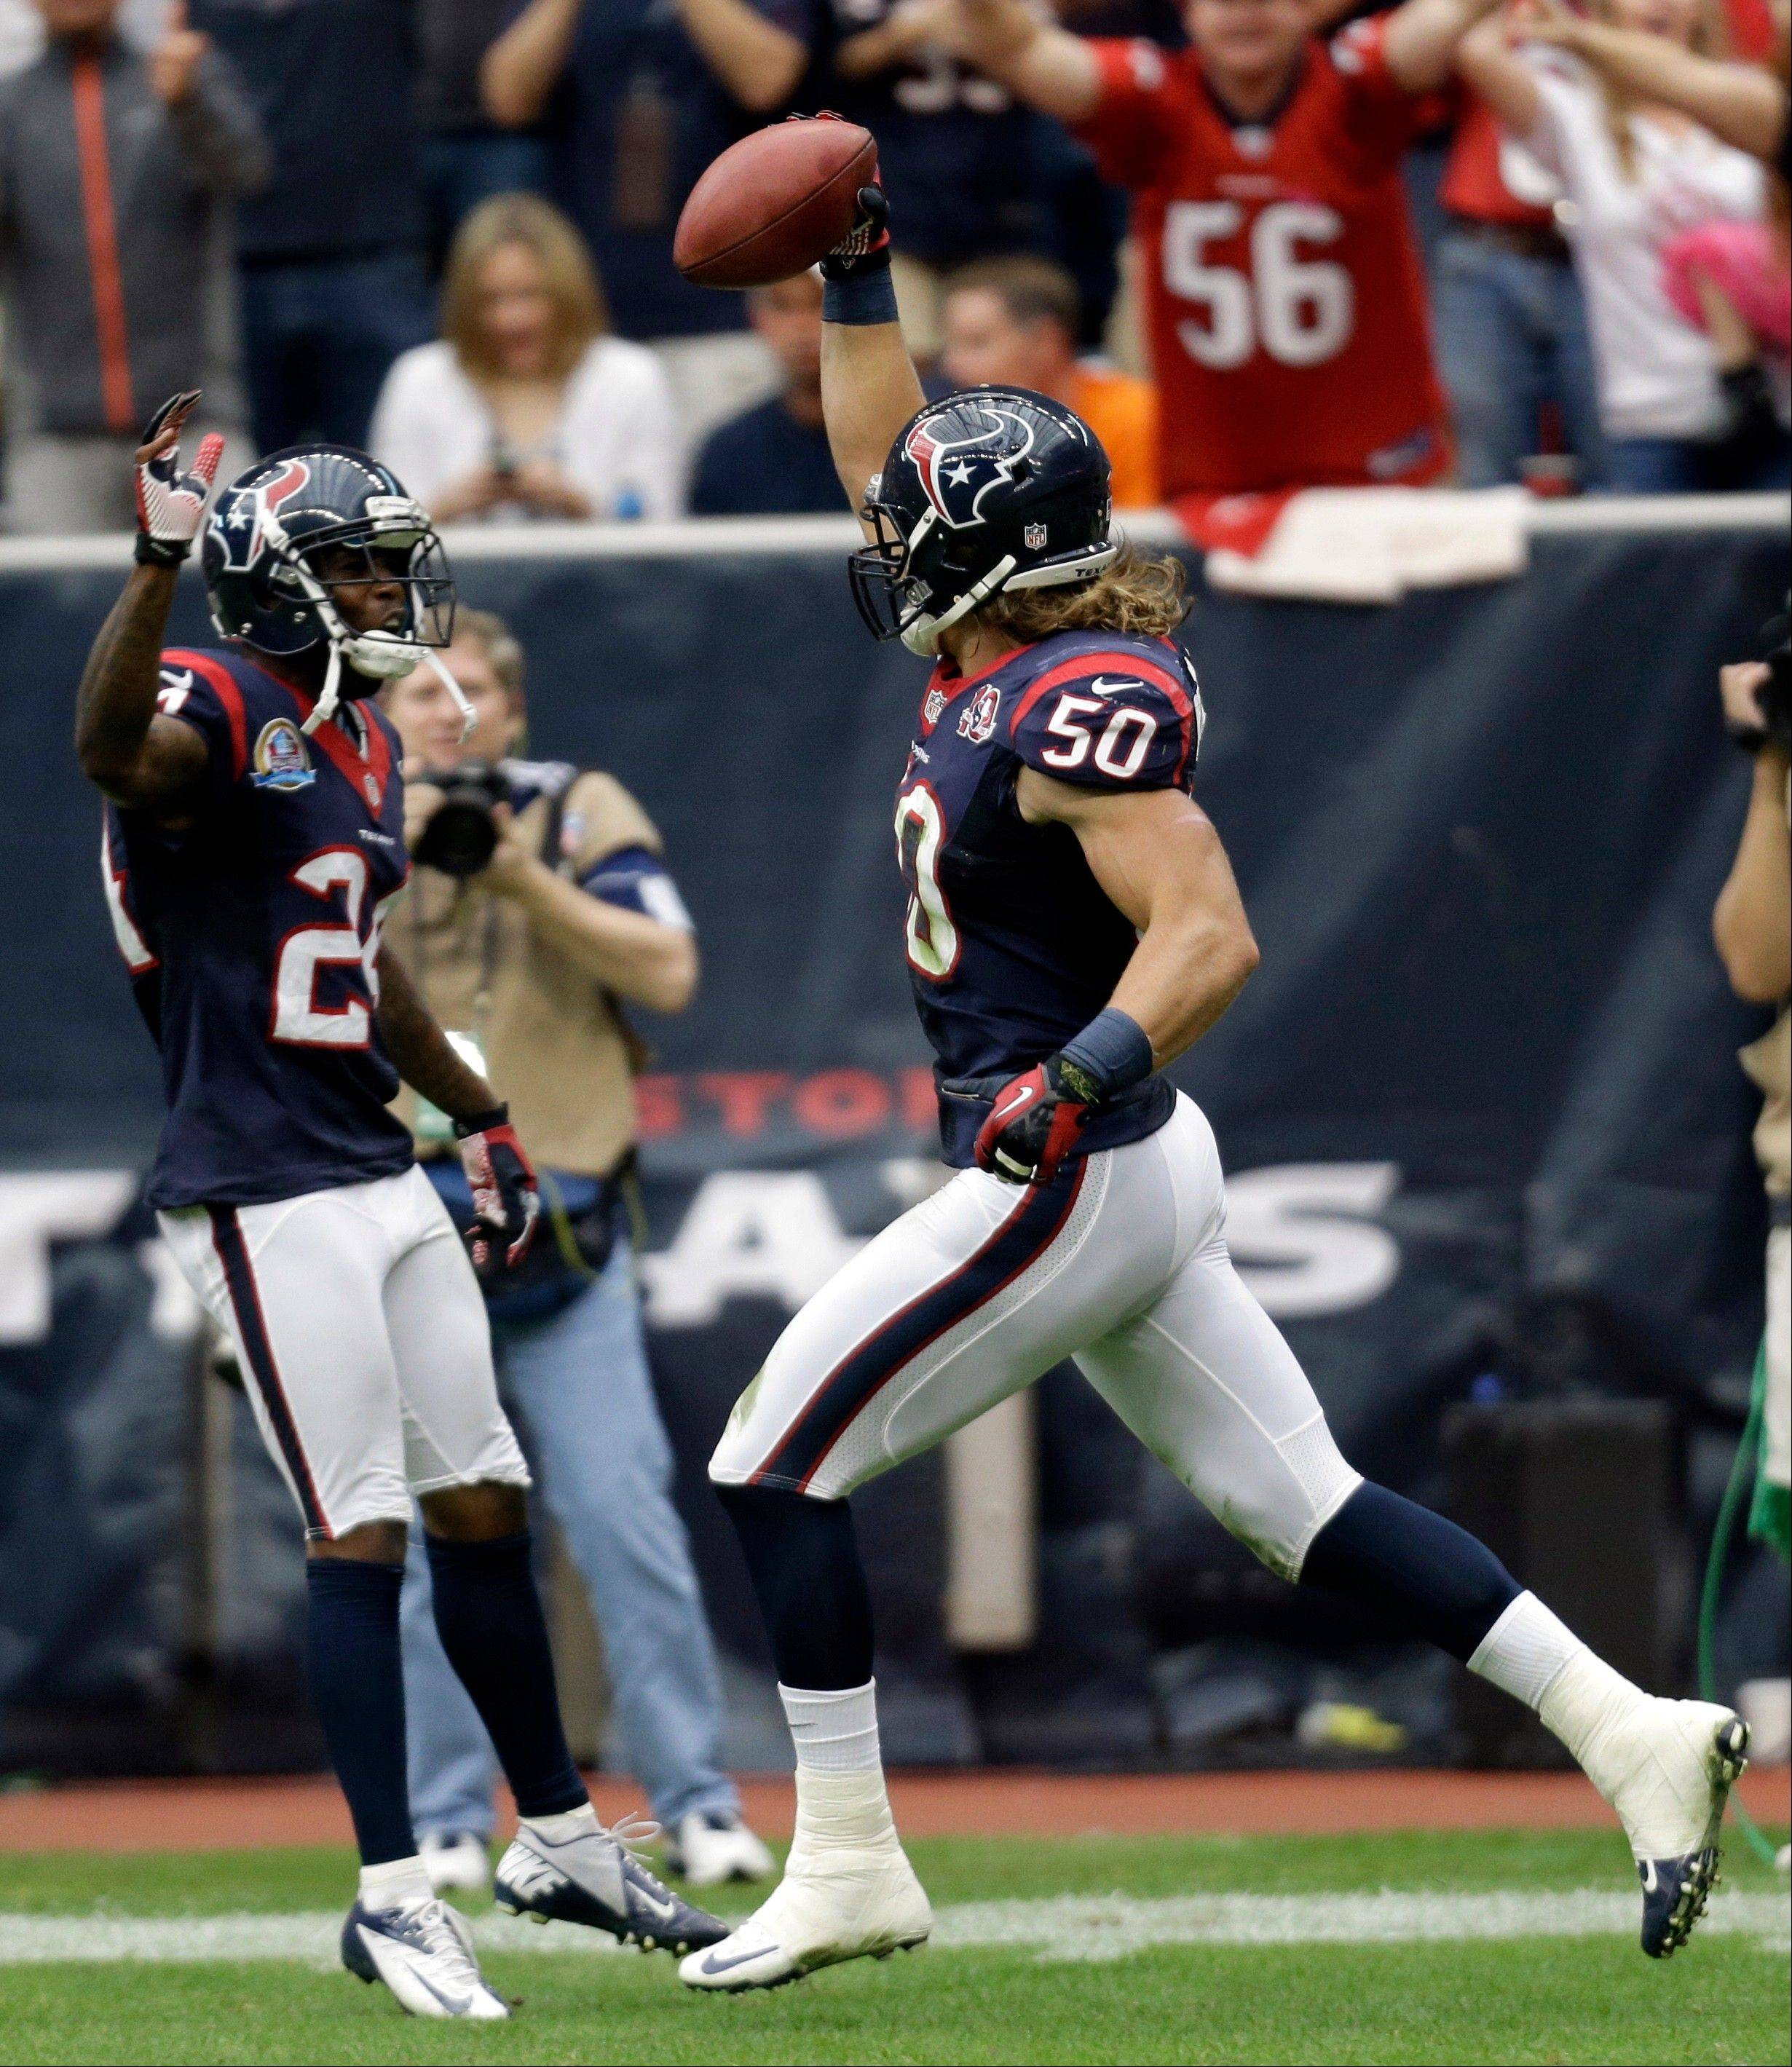 Houston Texans linebacker Bryan Braman (50) celebrates with Johnathan Joseph, left, after blocking a punt and returning it for a touchdown in the second quarter against the Indianapolis Colts, Sunday, in Houston.